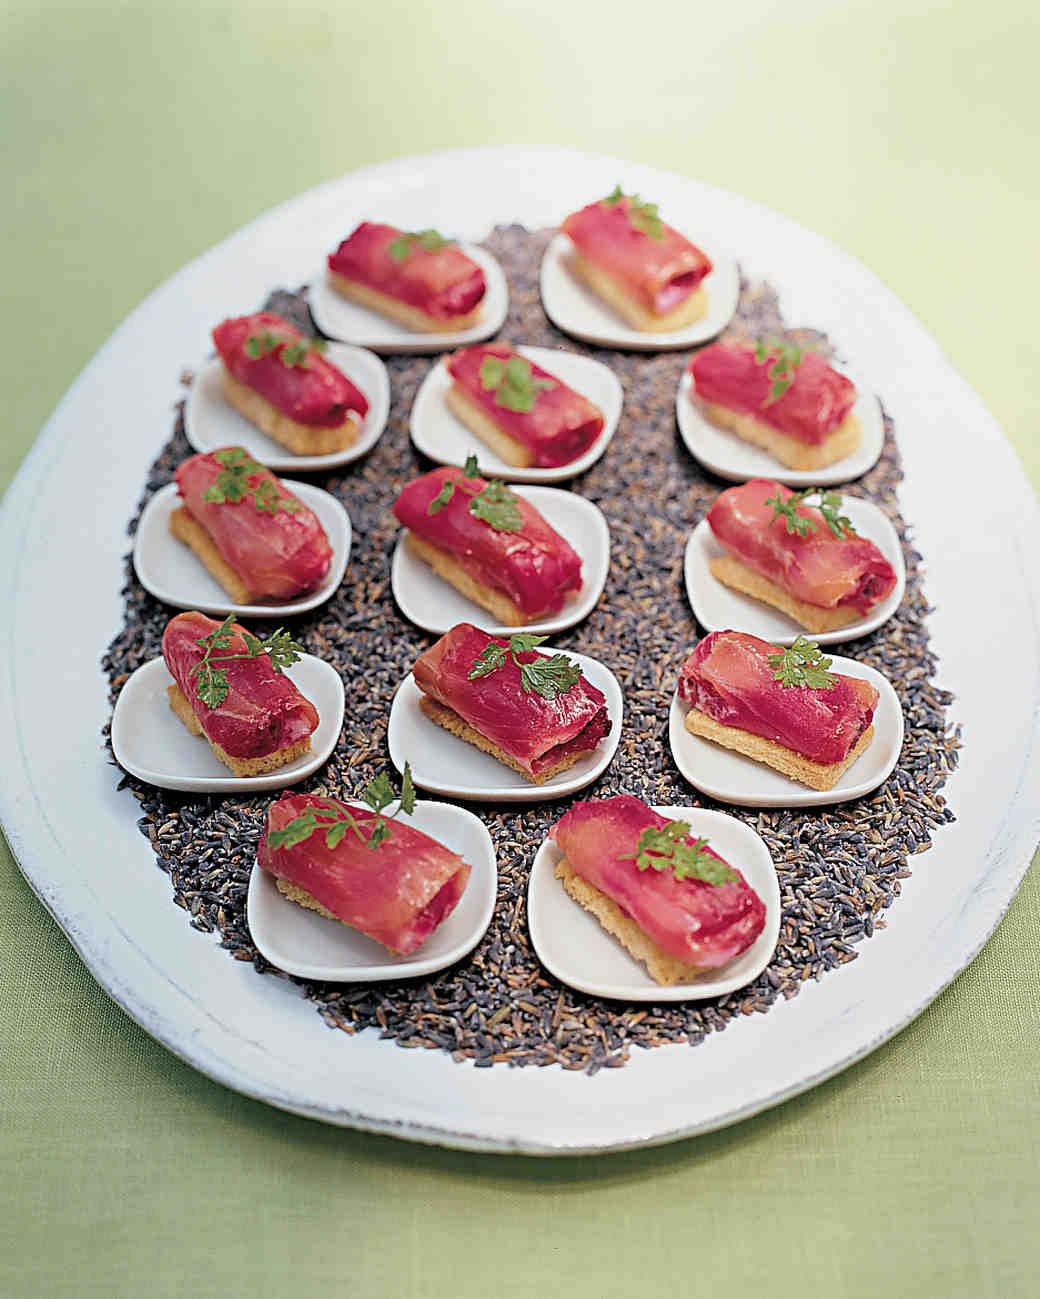 Smoked Salmon with Beets